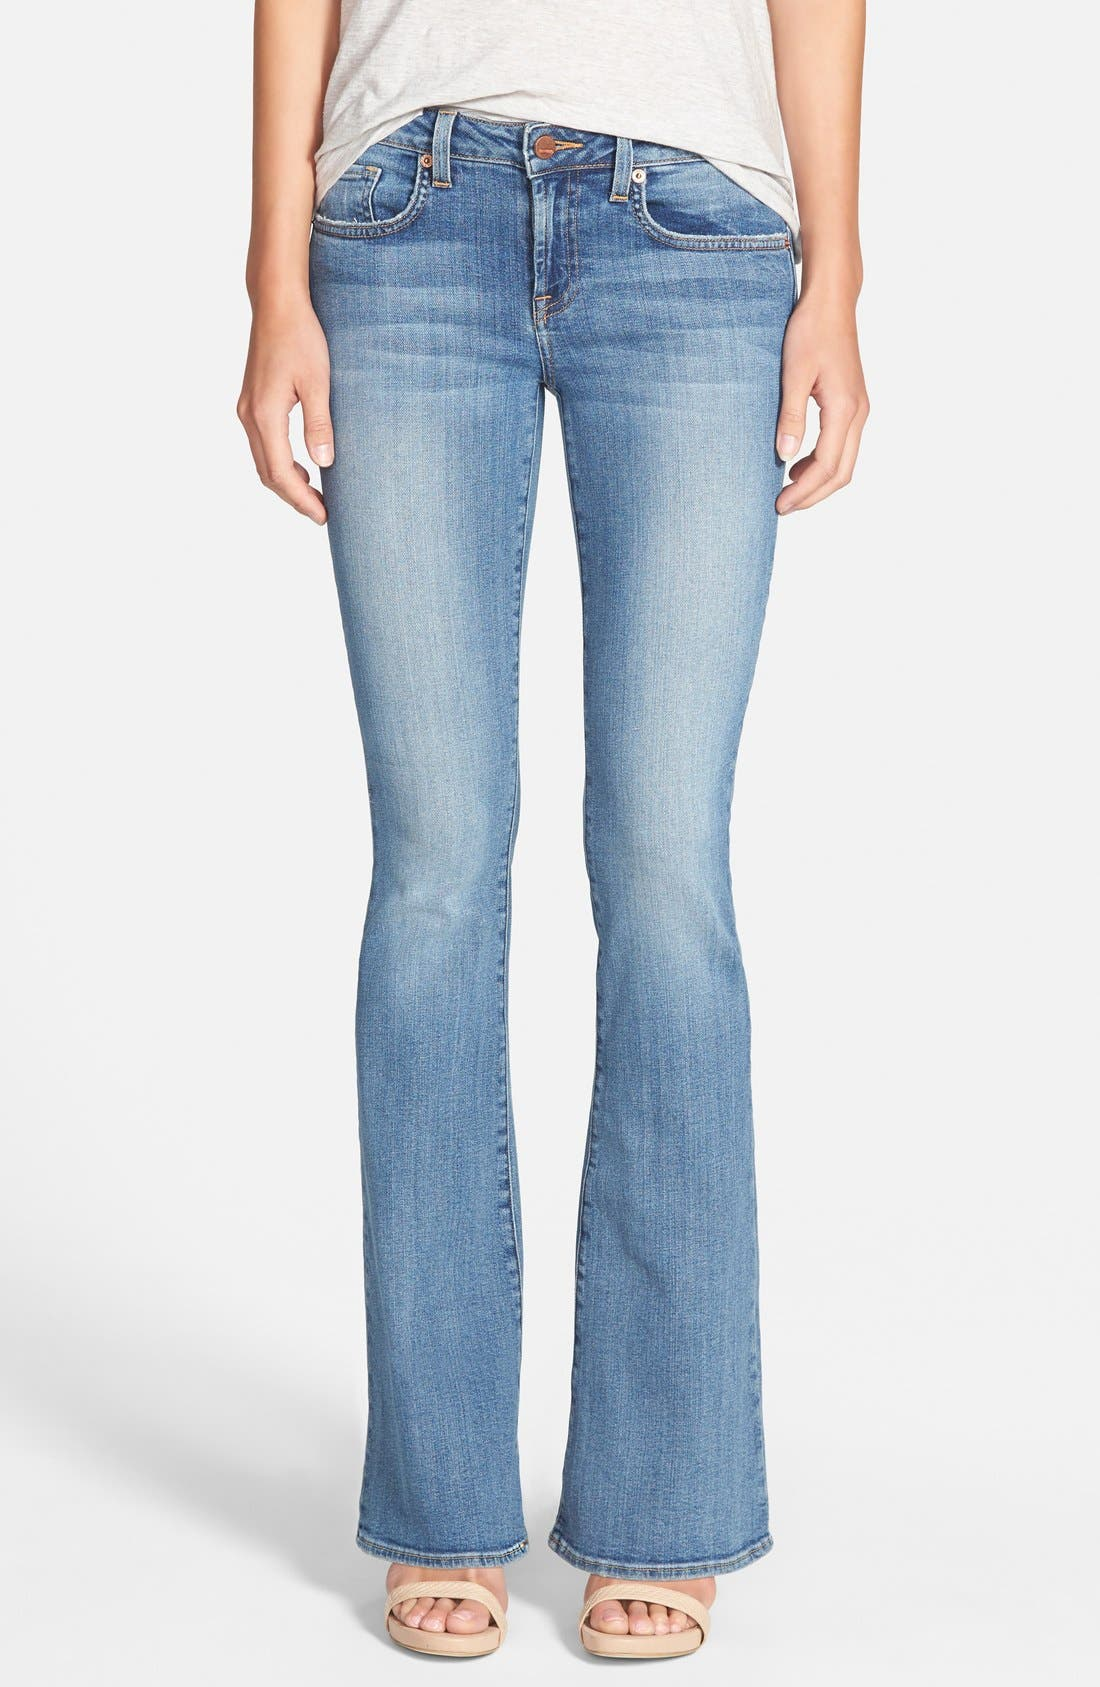 Main Image - Genetic 'Leaf' Low Rise Flare Jeans (Canyon)